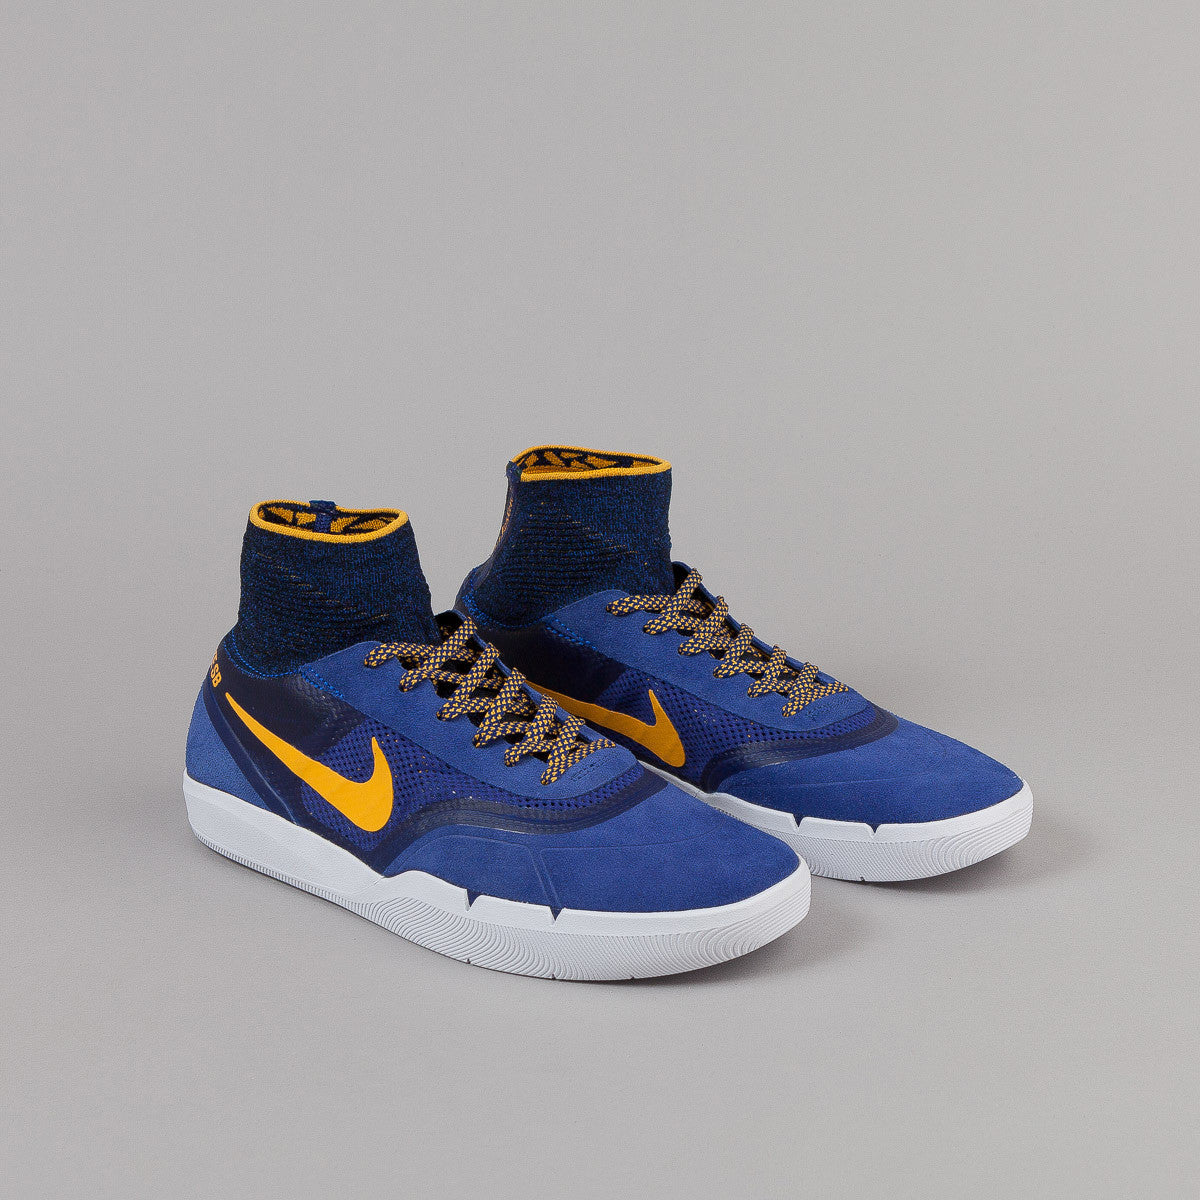 Nike SB Koston 3 Hyperfeel Shoes - Deep Royal Blue/University Gold - White